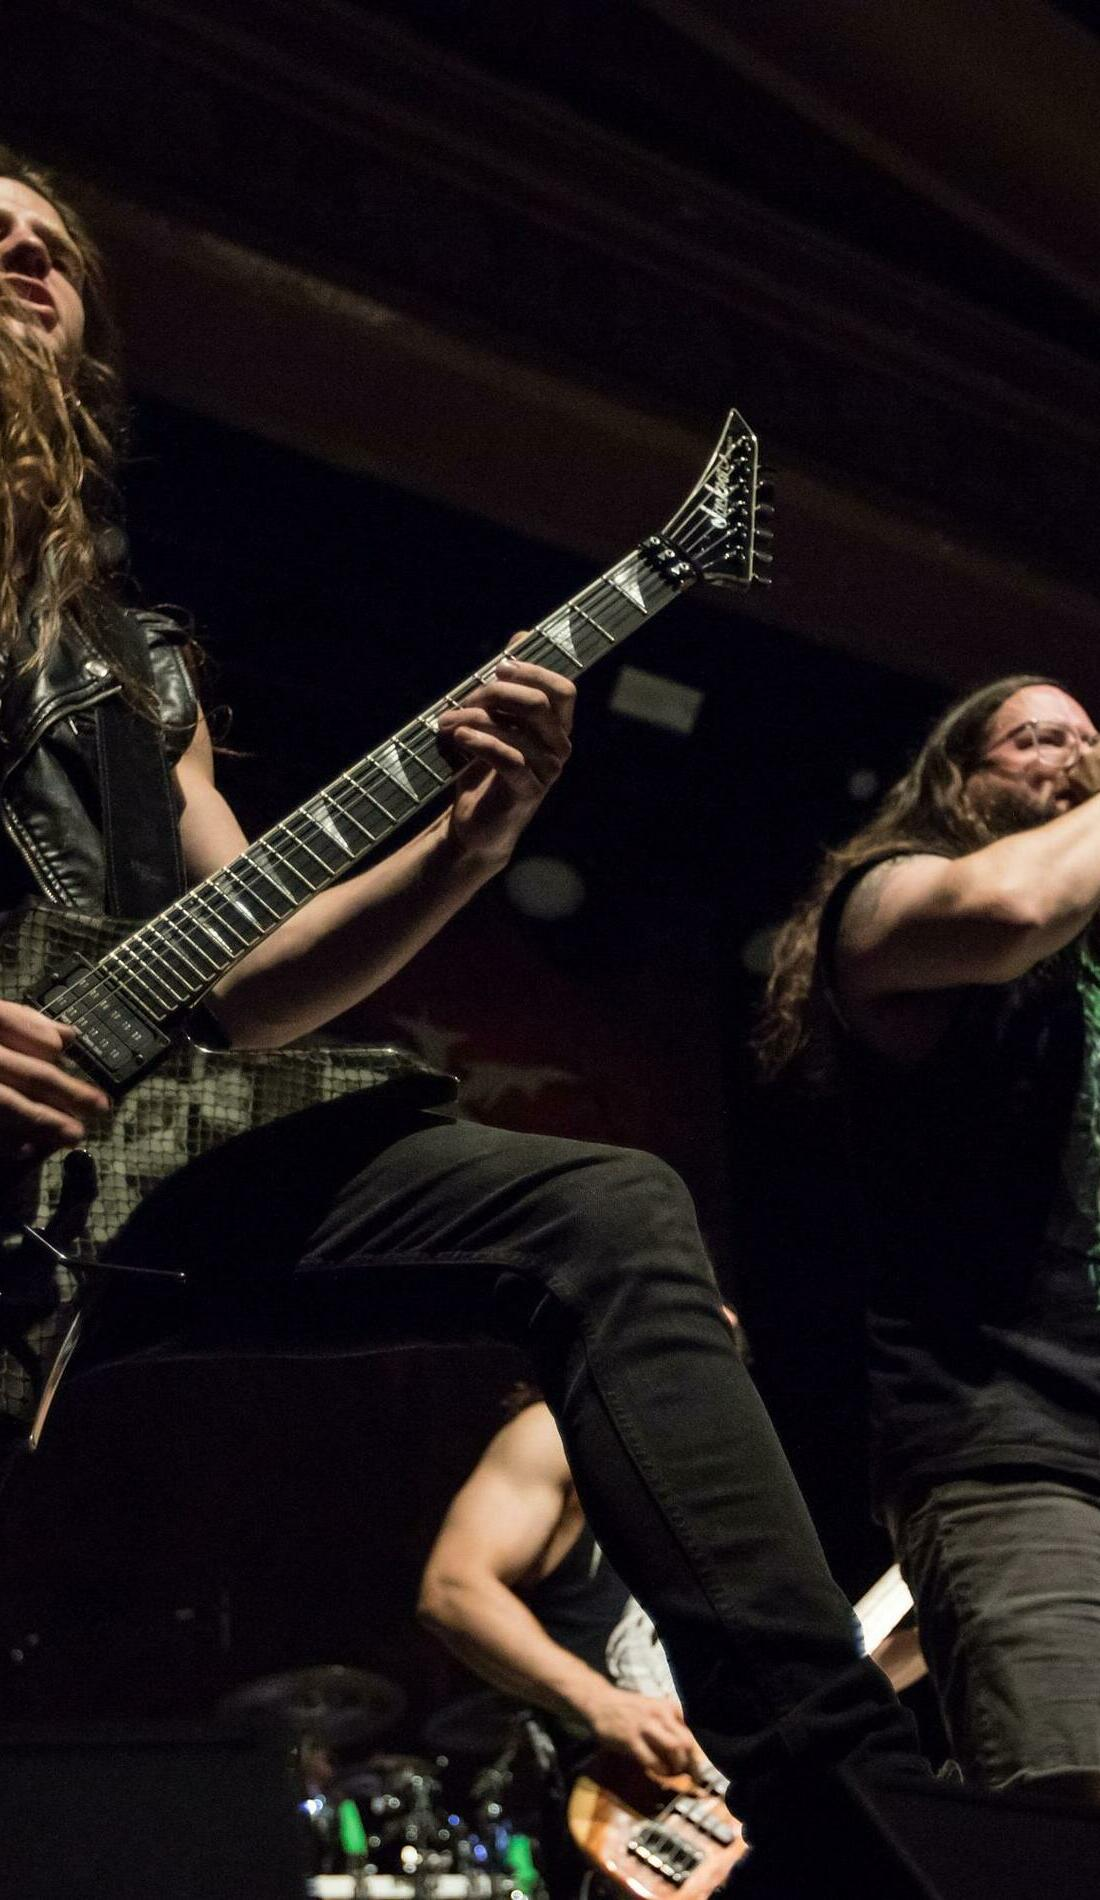 A The Black Dahlia Murder live event